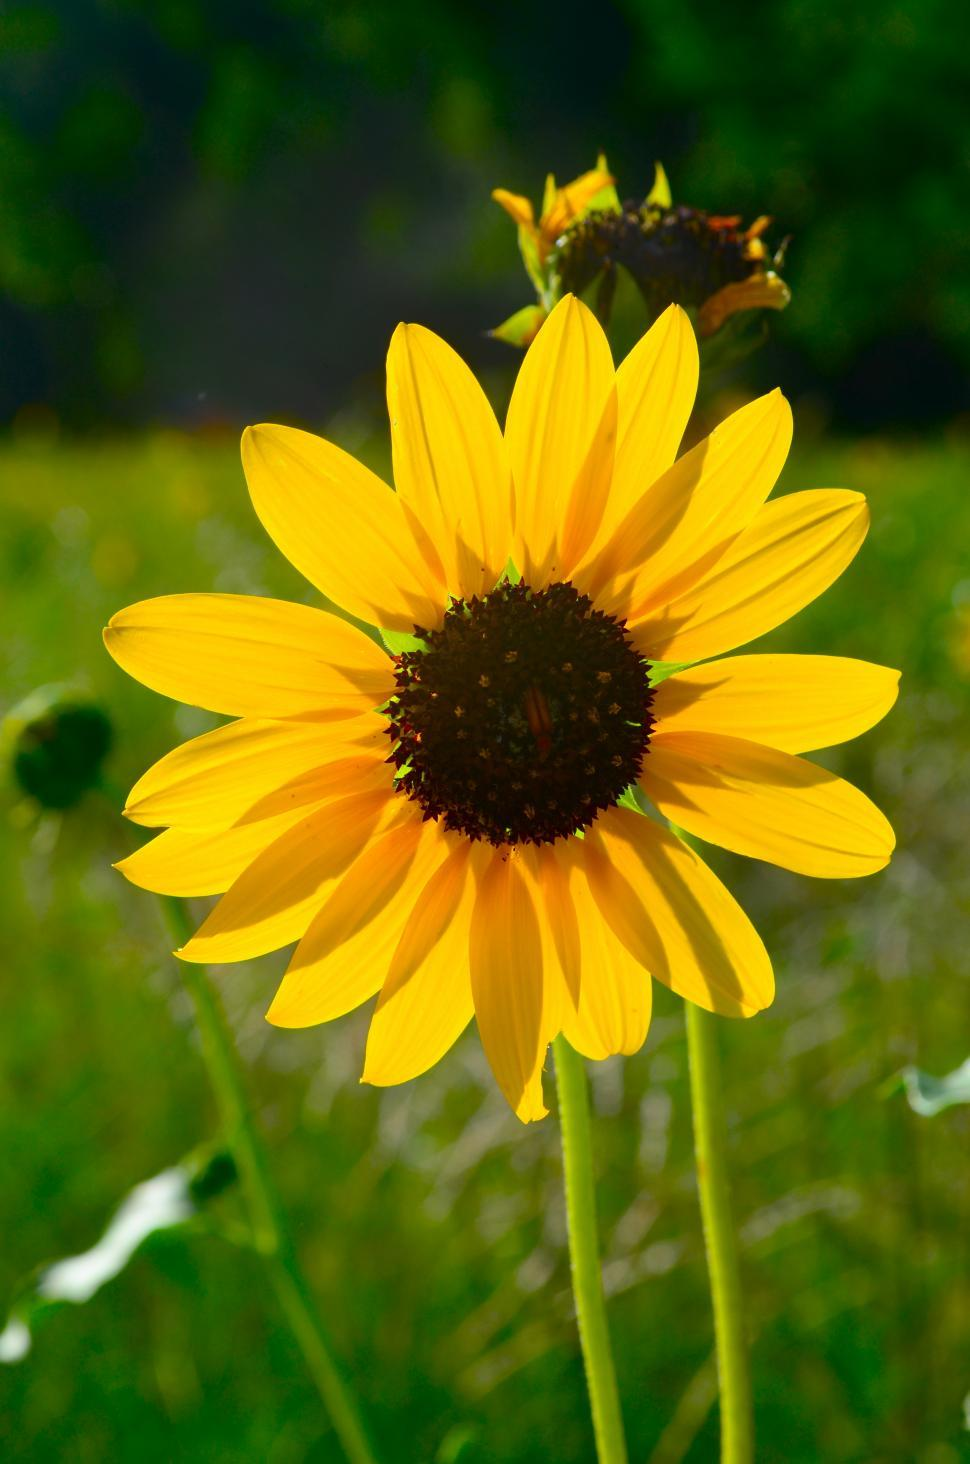 Download Free Stock HD Photo of Yellow Sunflower Large Online